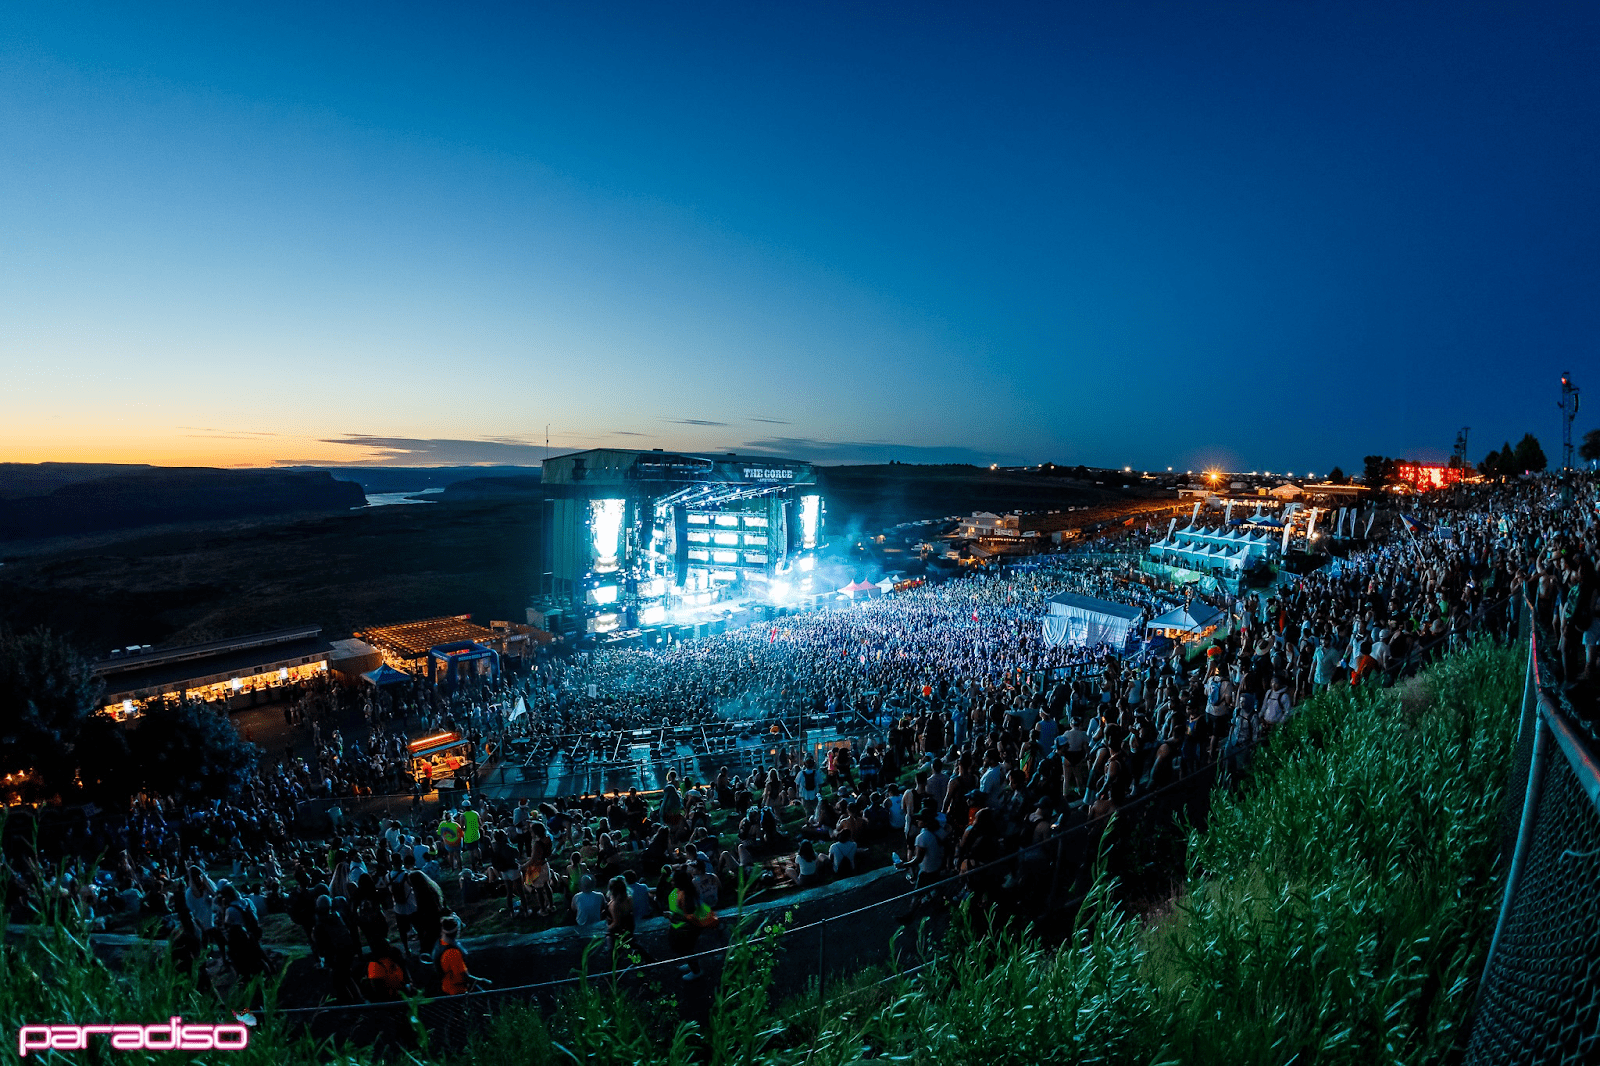 Paradiso 2019: Memories that Will Last a Lifetime